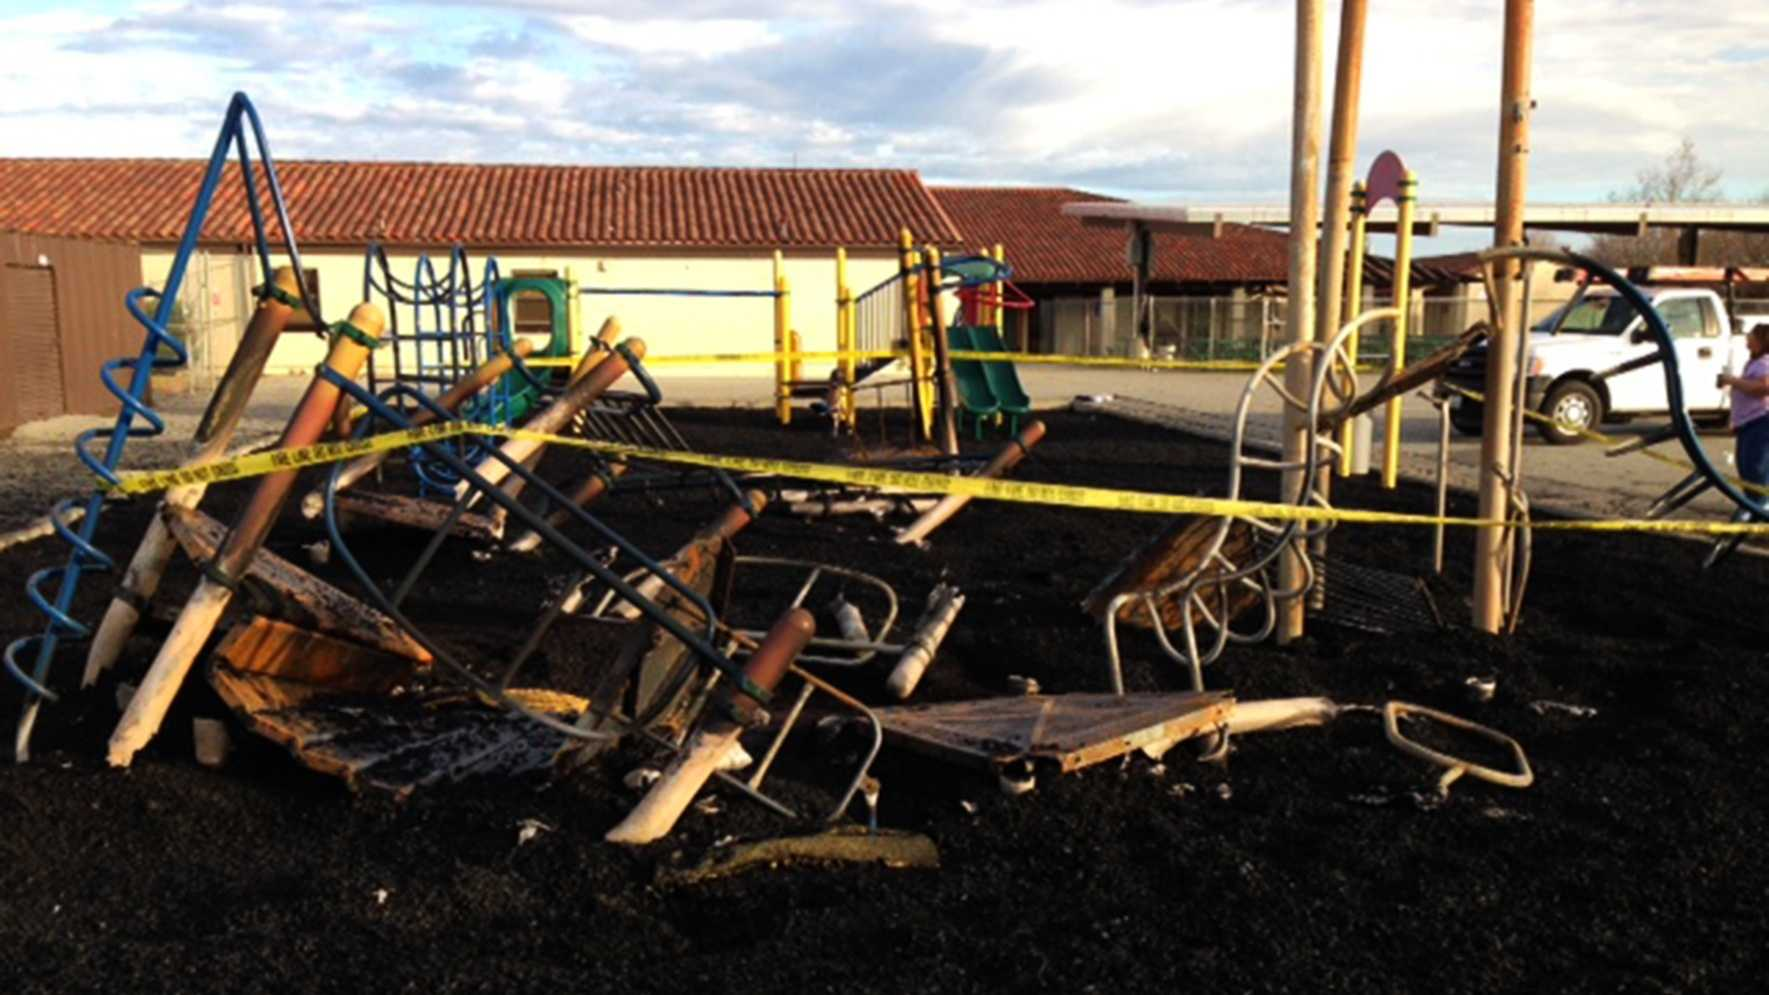 Calaveras Elementary School's playground was burned to the ground.